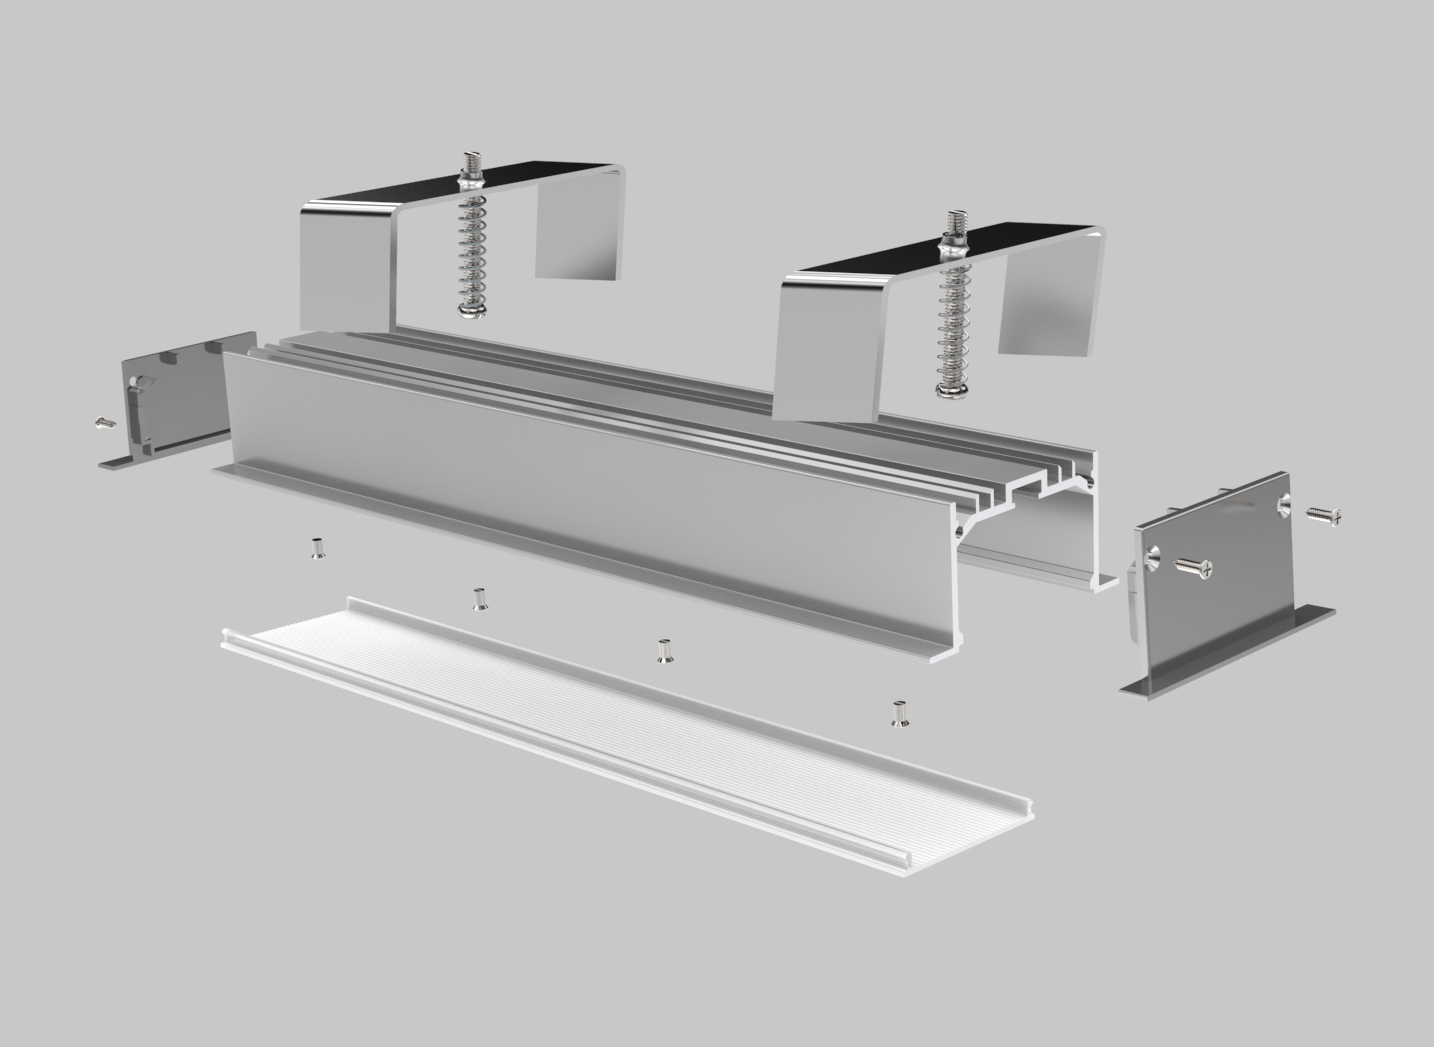 4 Foot Linear Housing – PL001